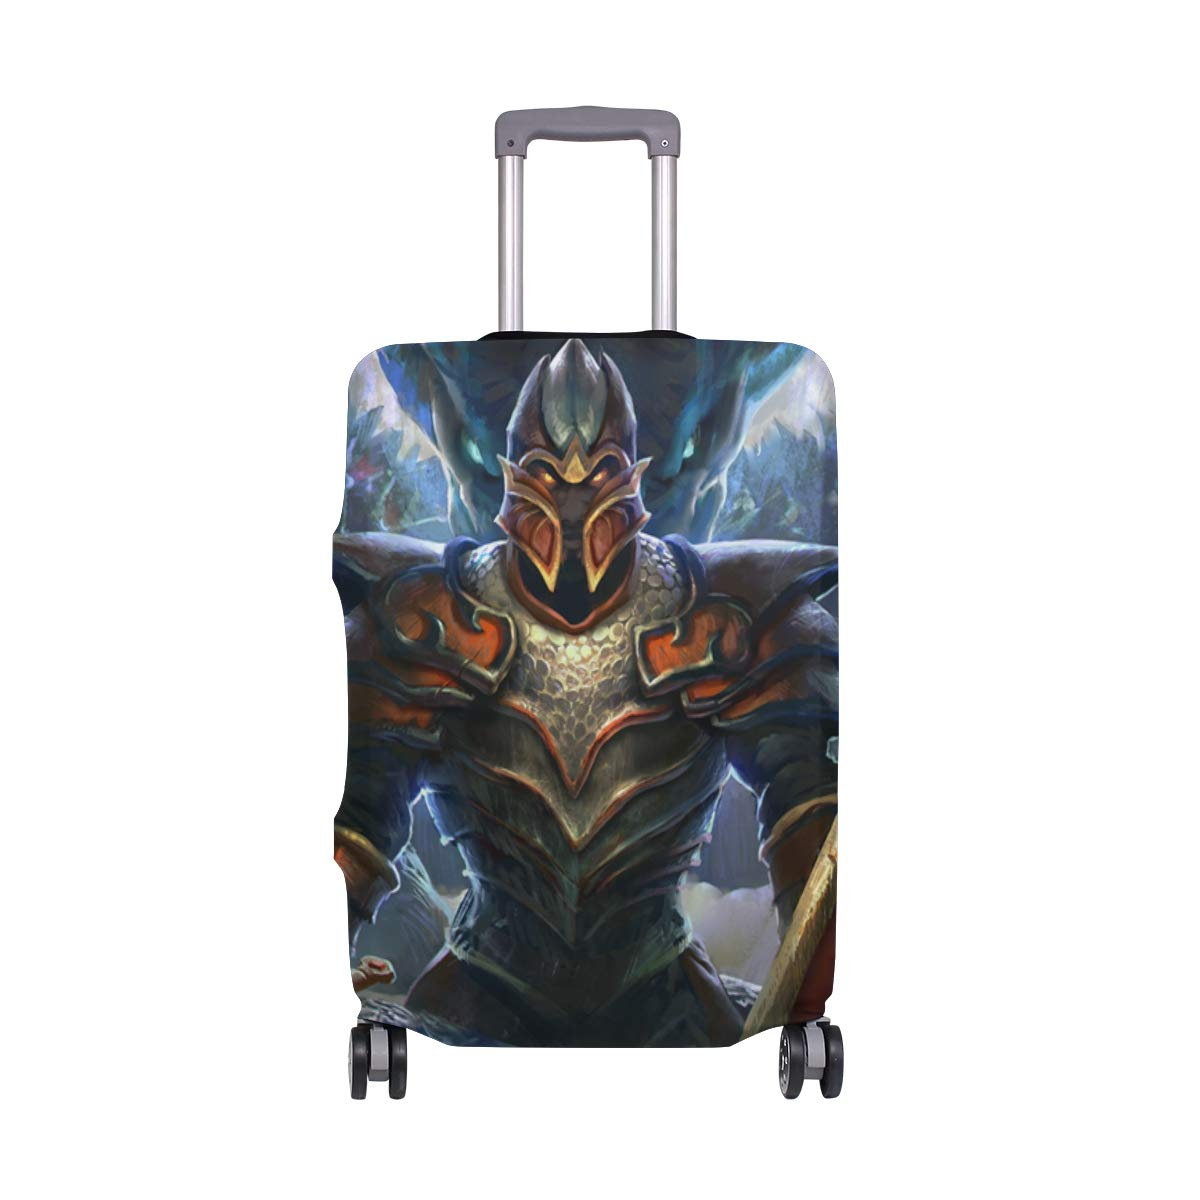 Dragon Knight Dota Travel Luggage Cover Suitcase Protector Fits 26-28 Inch Washable Baggage Covers